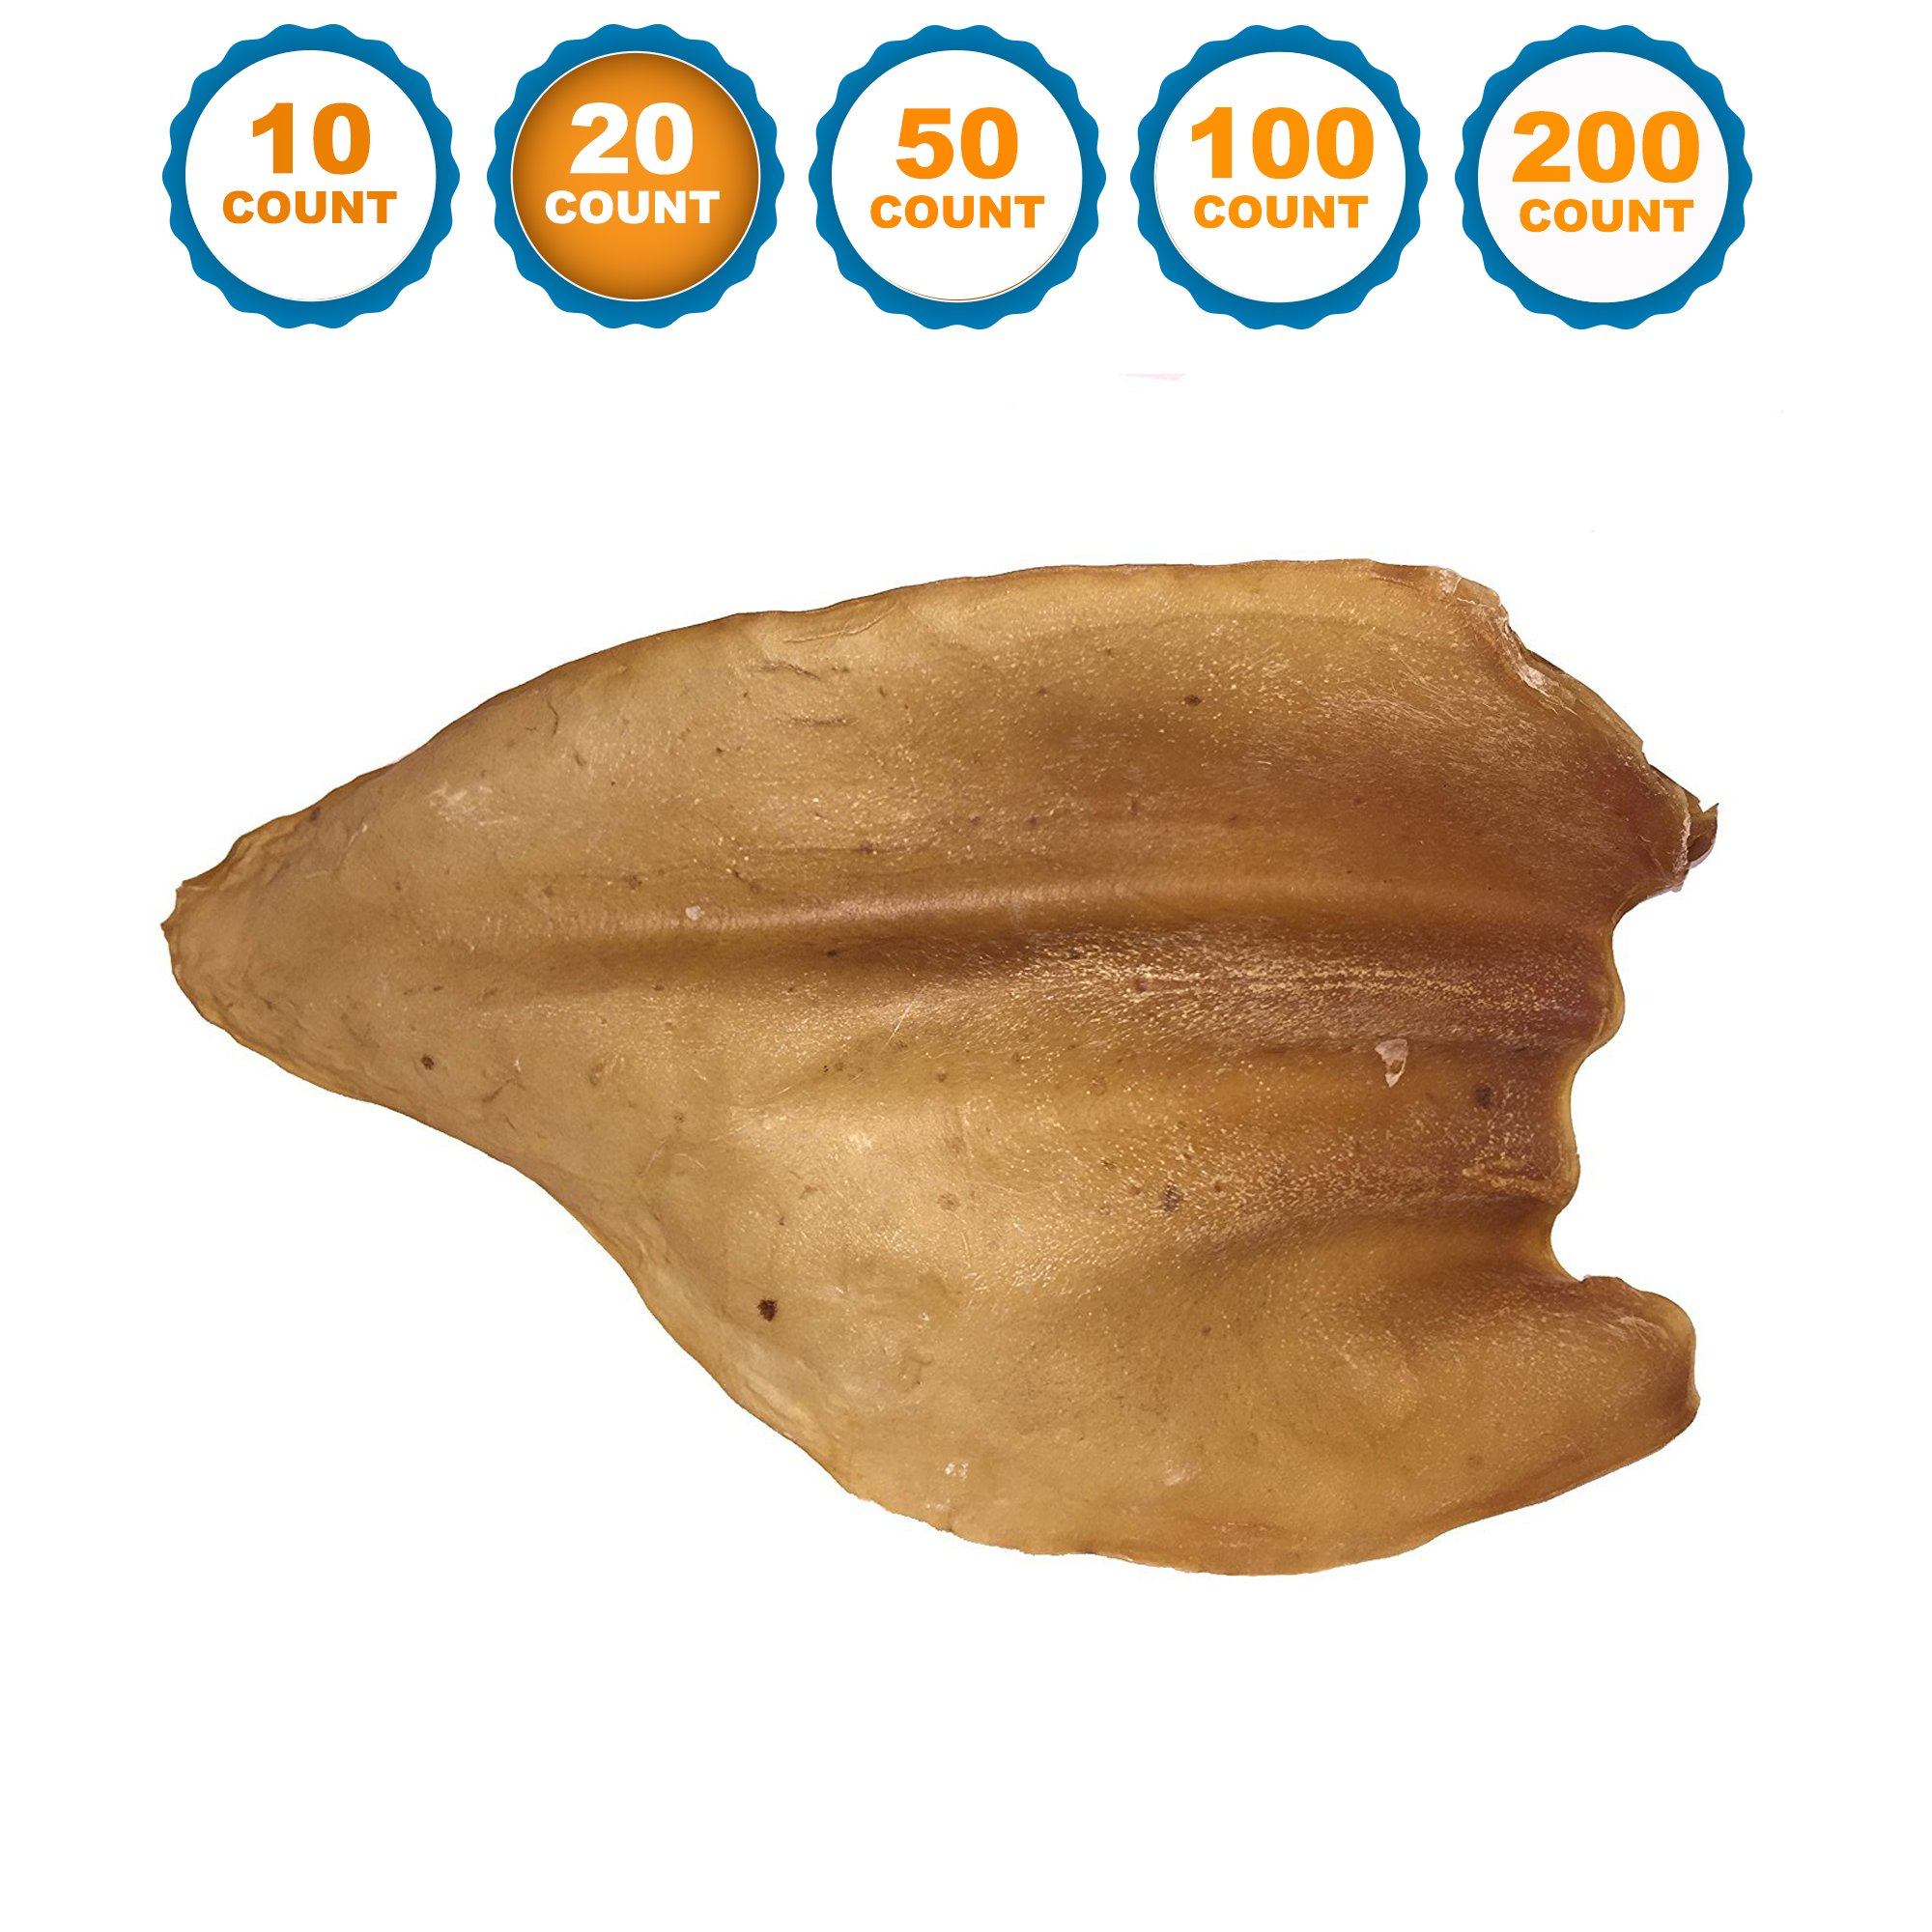 123 Treats Dog Chews Cow Ears (20 Count) 100% Natural Animal Ears From Free Range Grass Fed Cattle with No Hormones, Additives or Chemicals